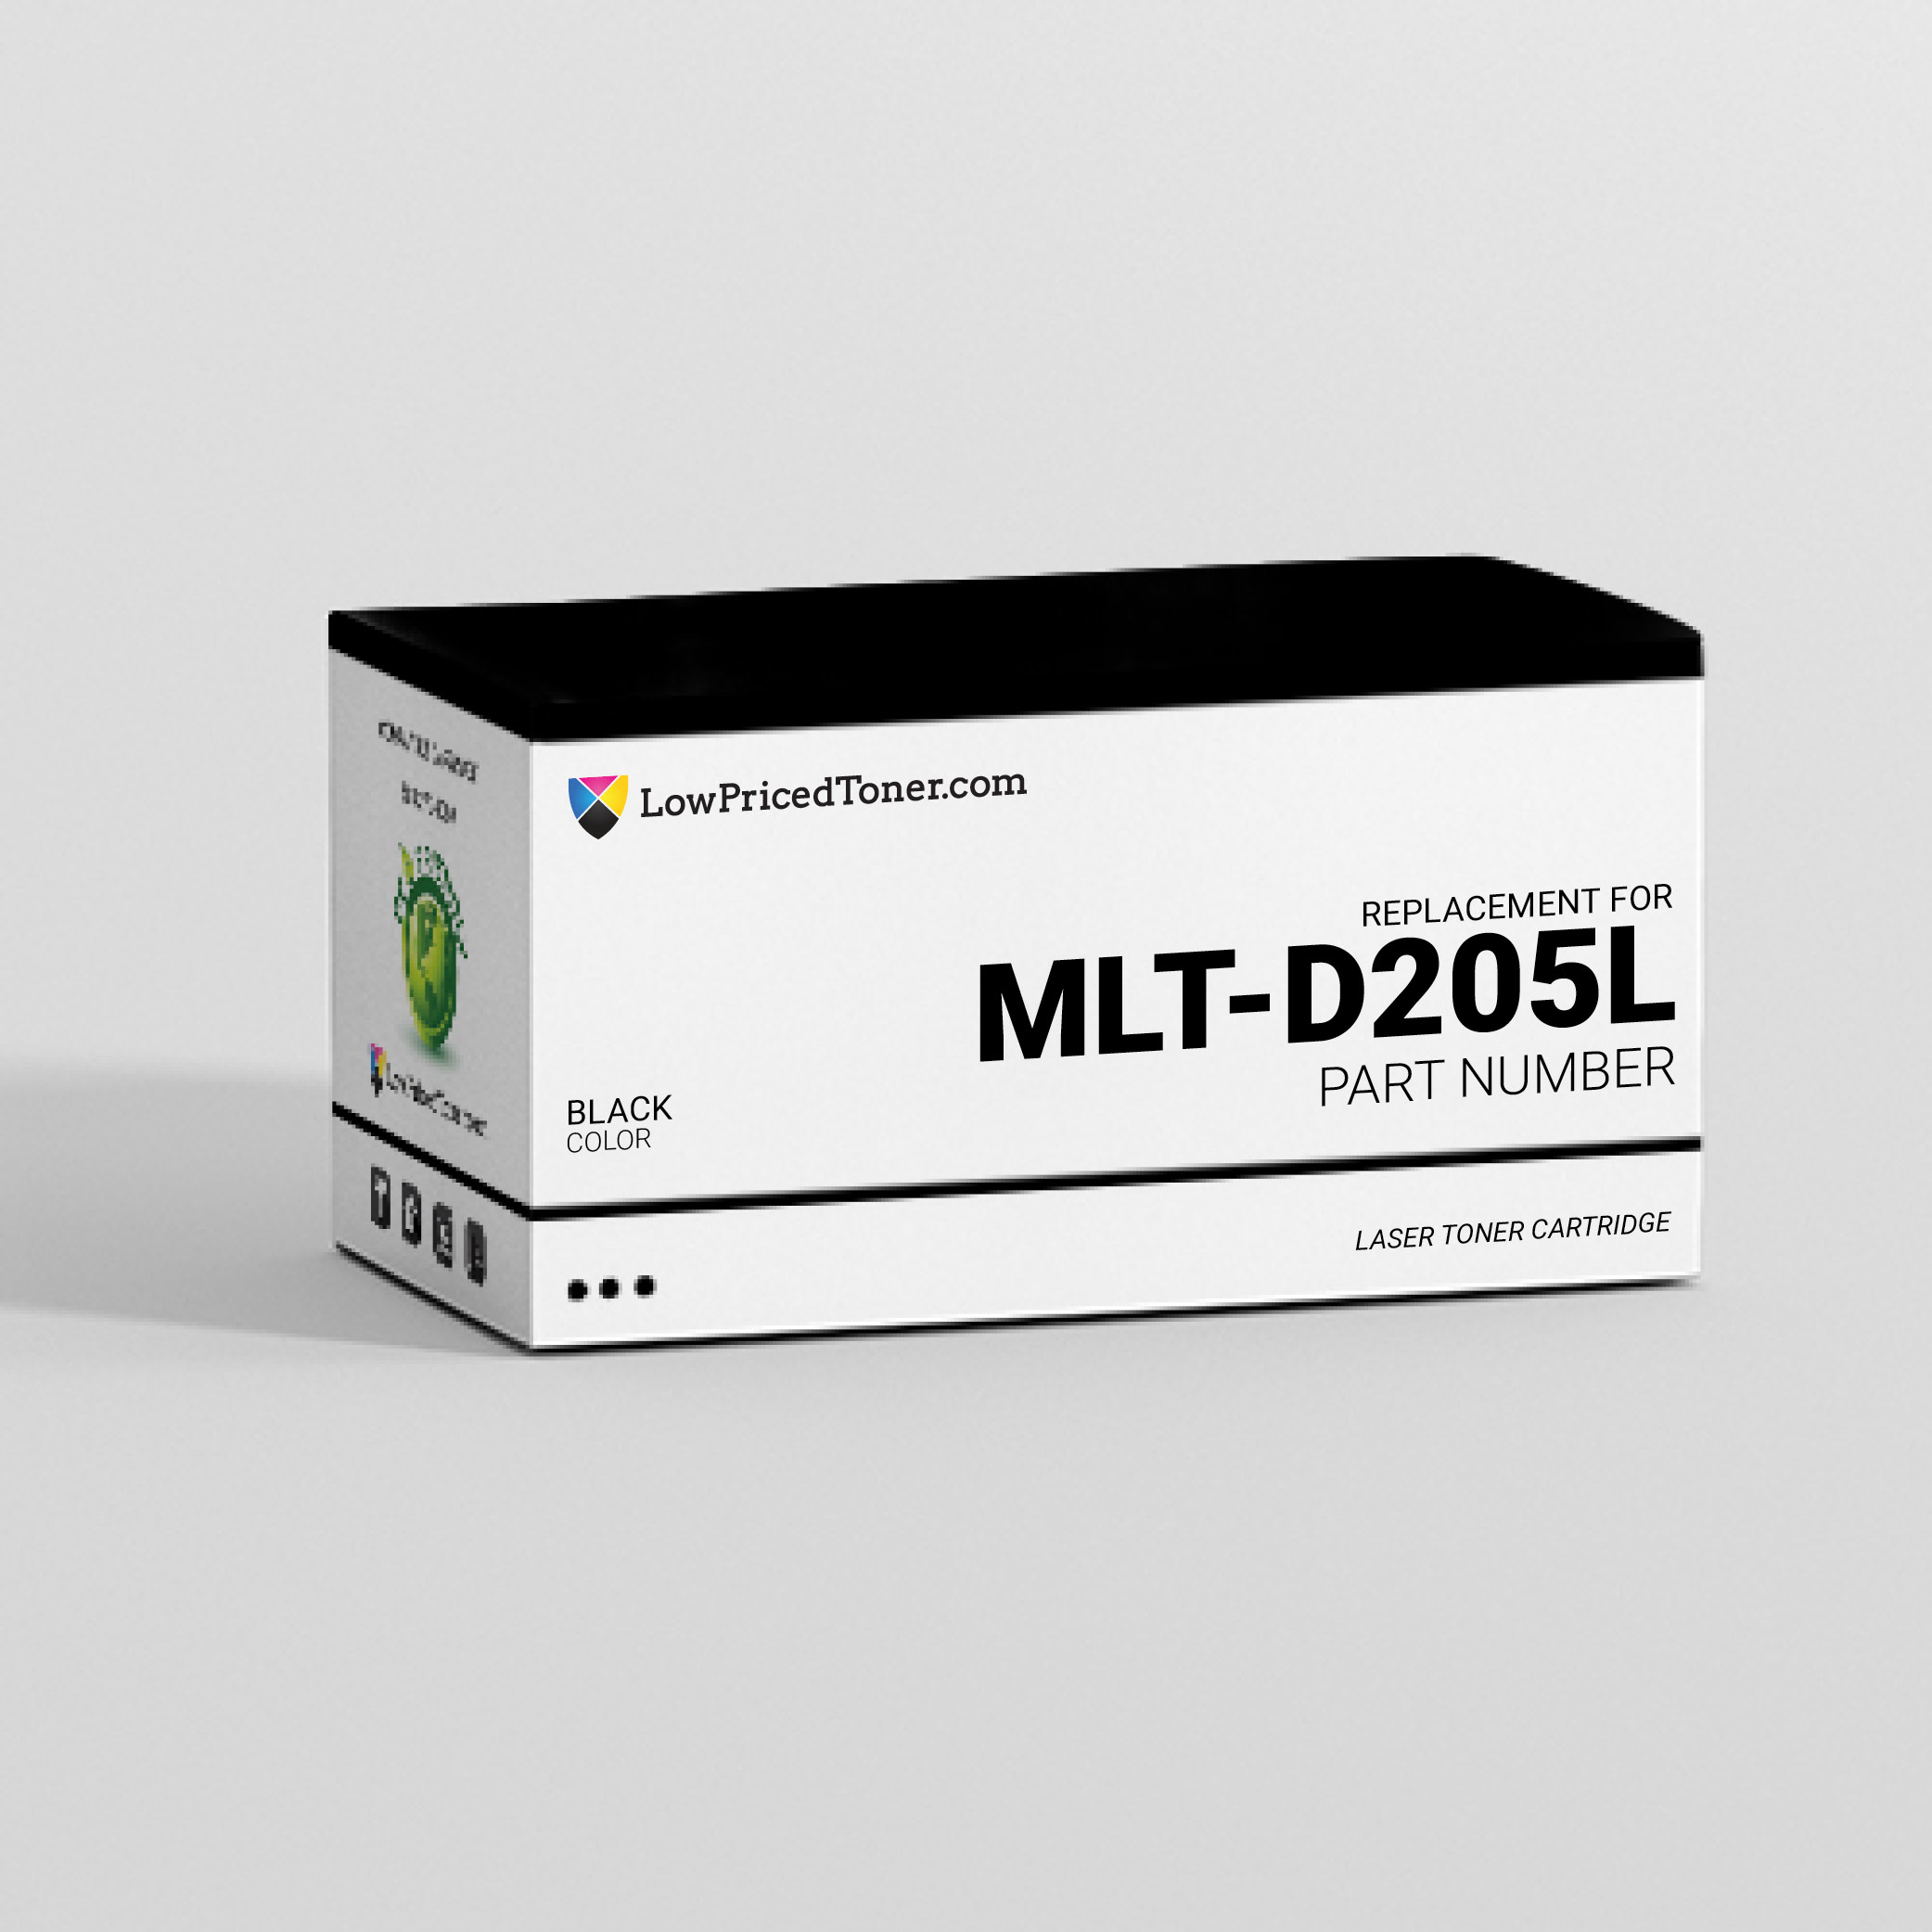 Samsung MLT-D205L Compatible Black Laser Toner Cartridge